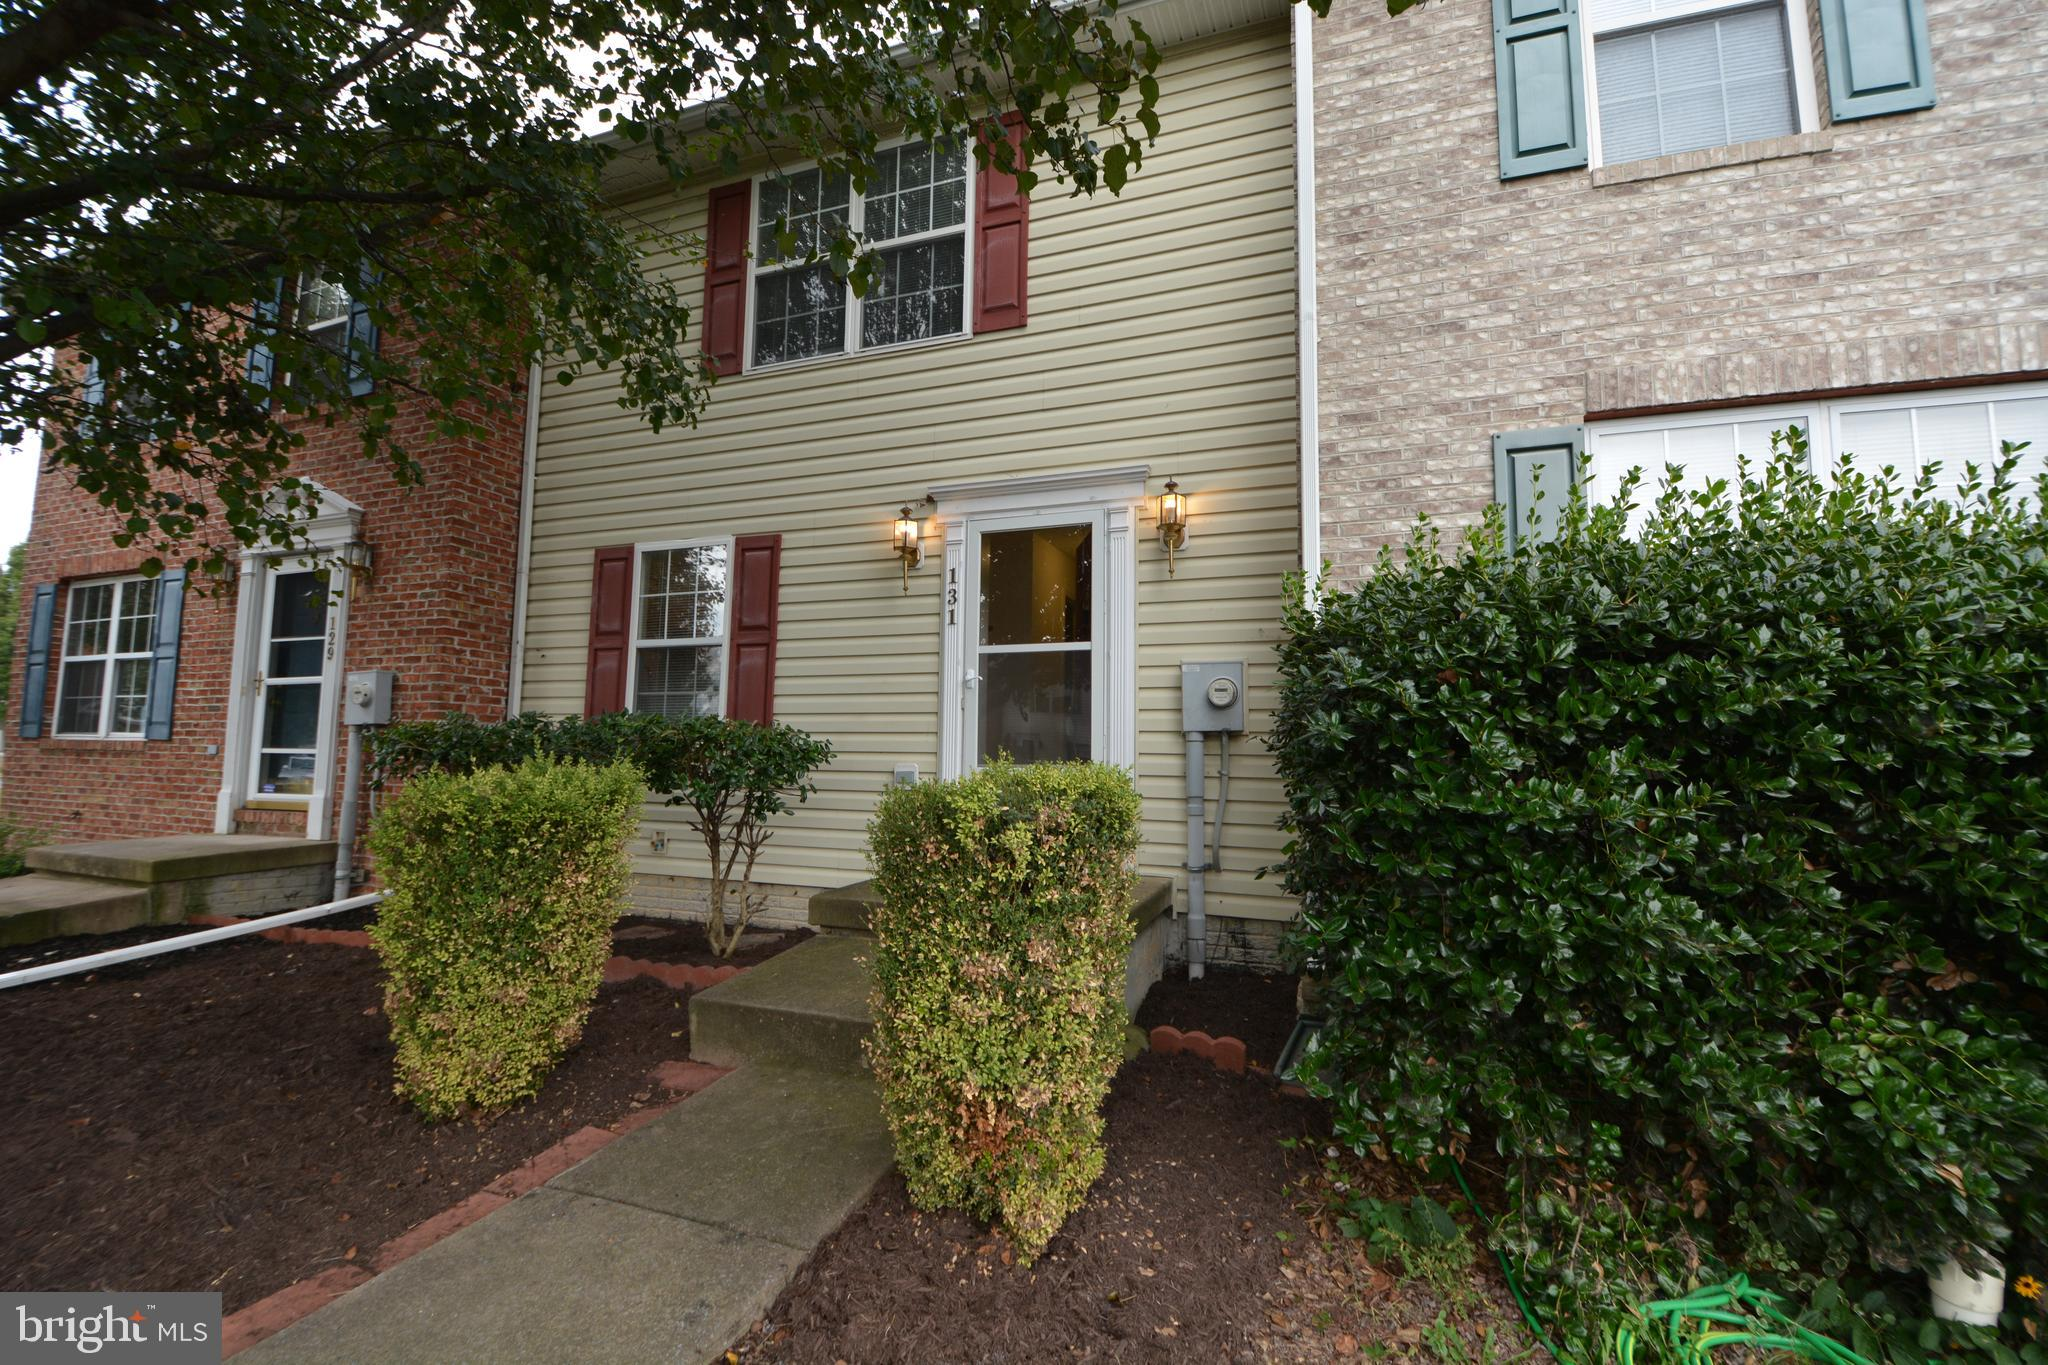 Property is in great condition and ready for a new owner. Close to just about everything. Great comm